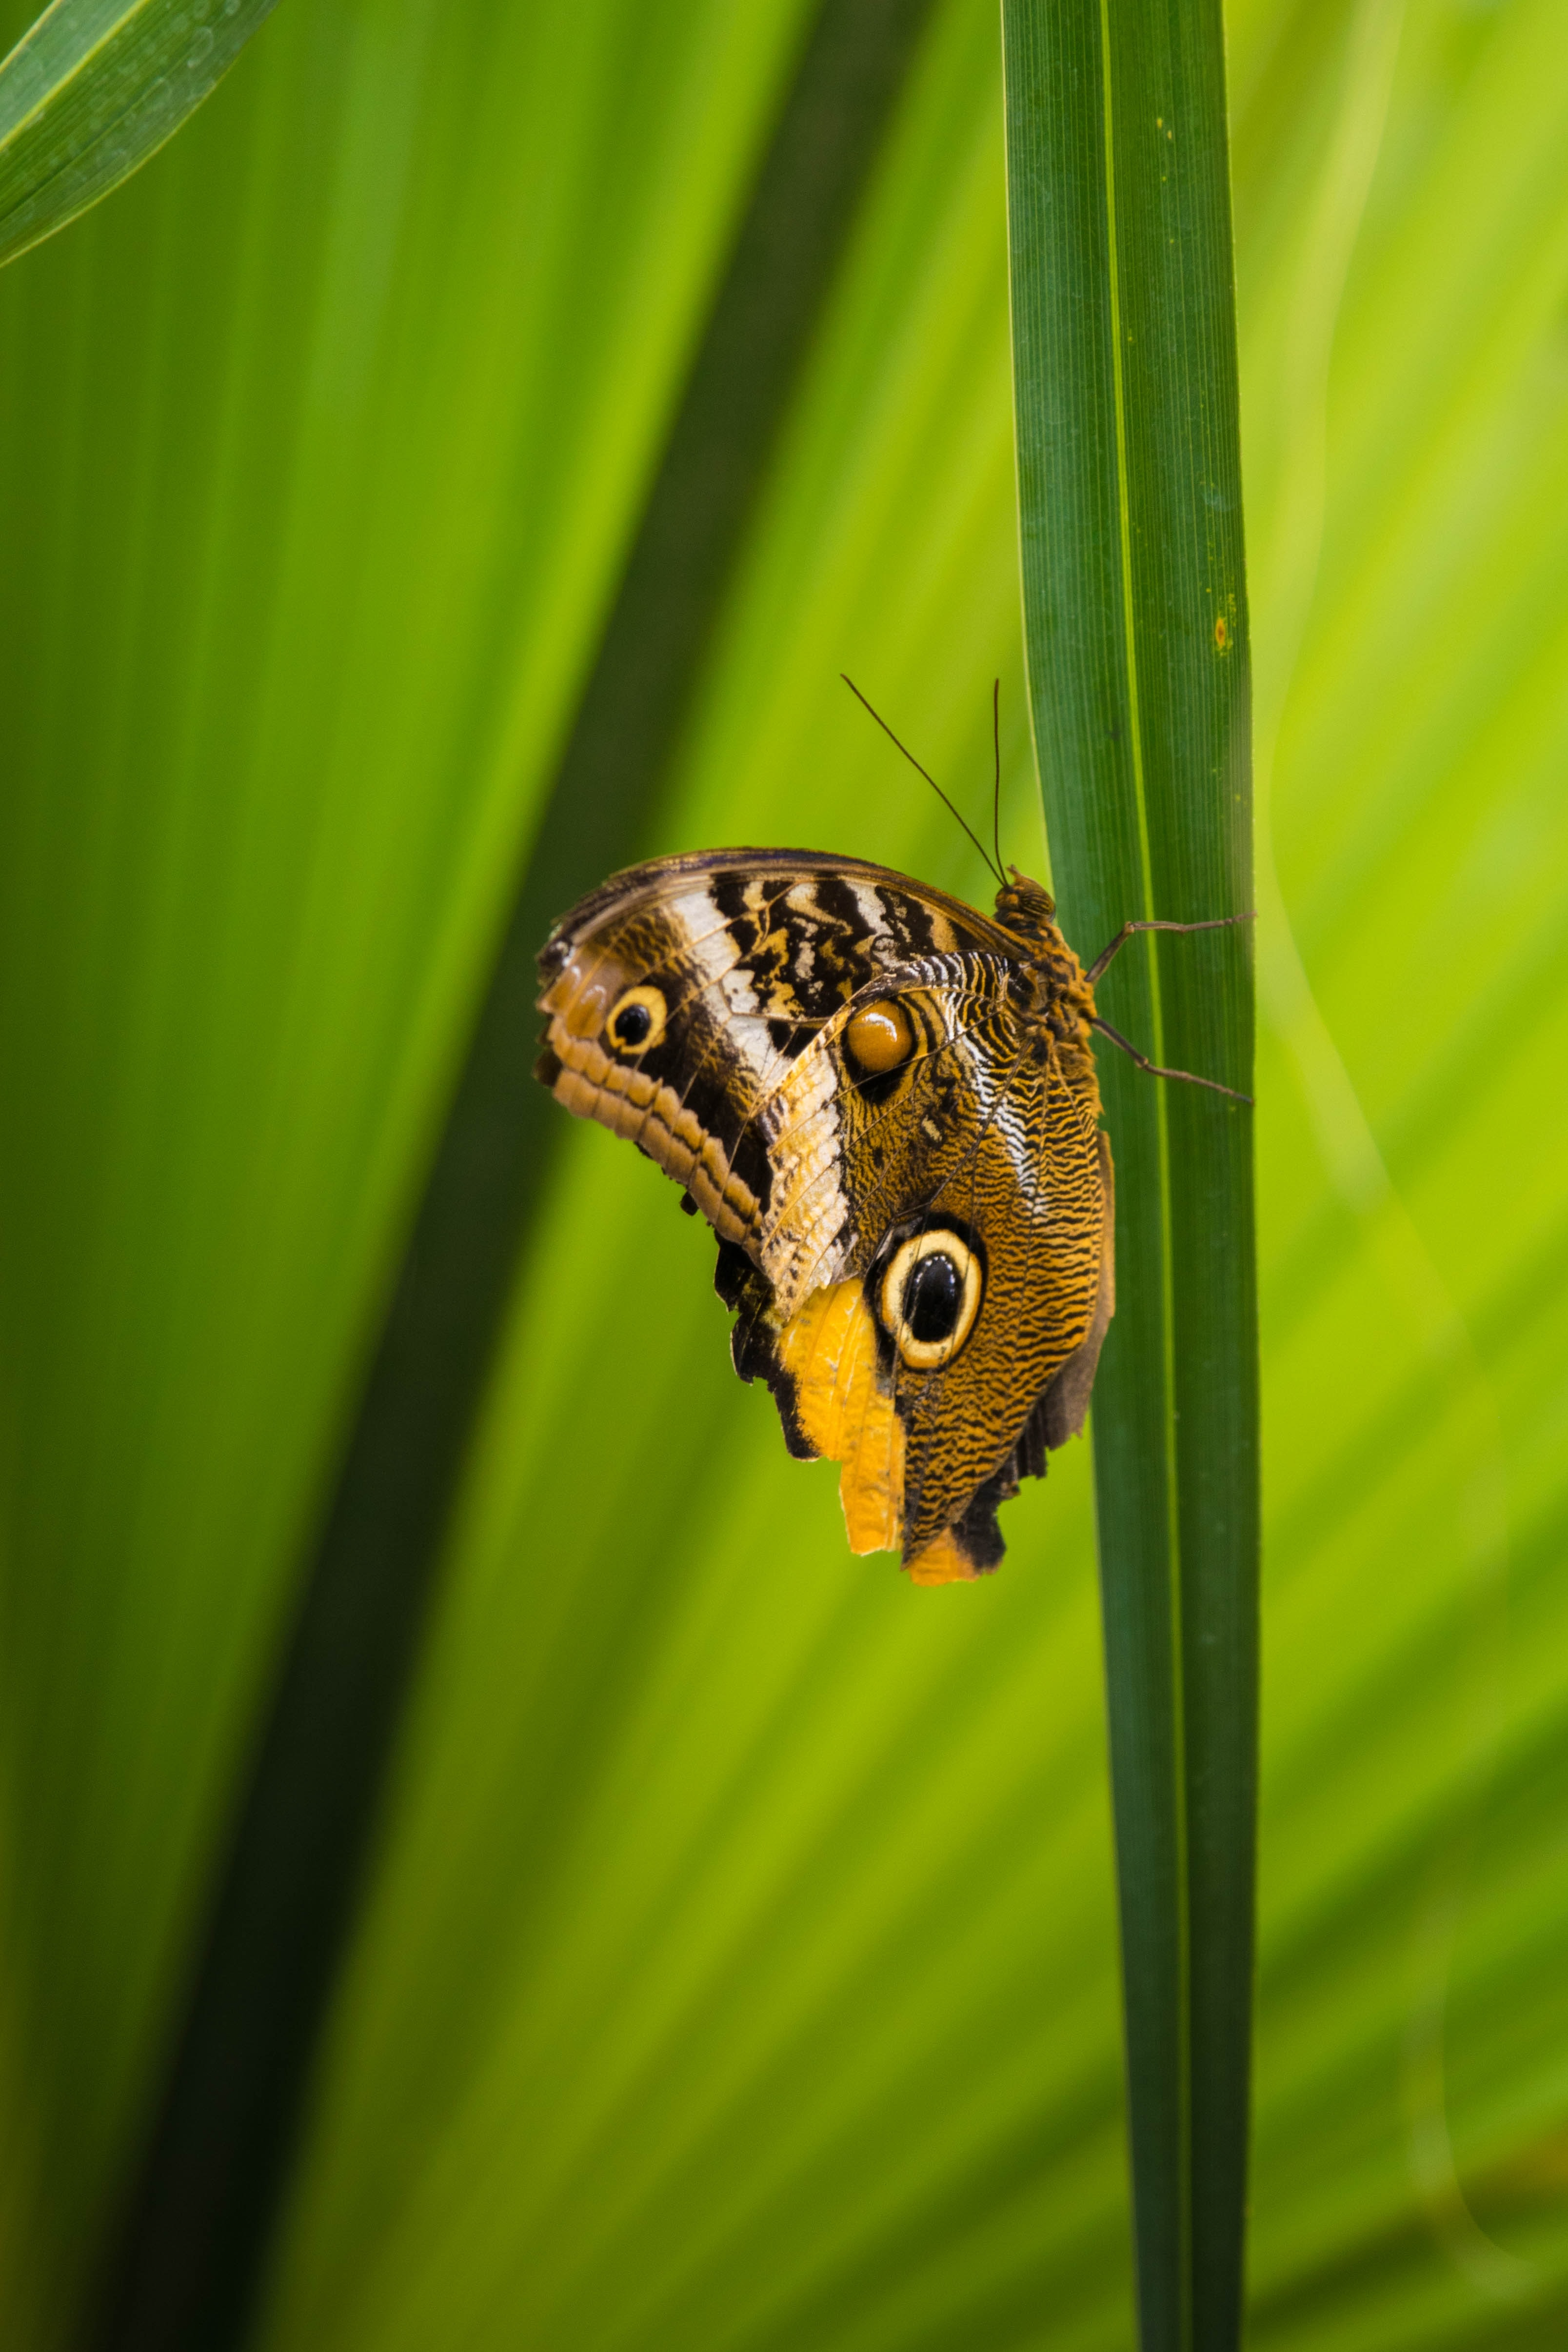 brown and black butterfly perching on green leaf